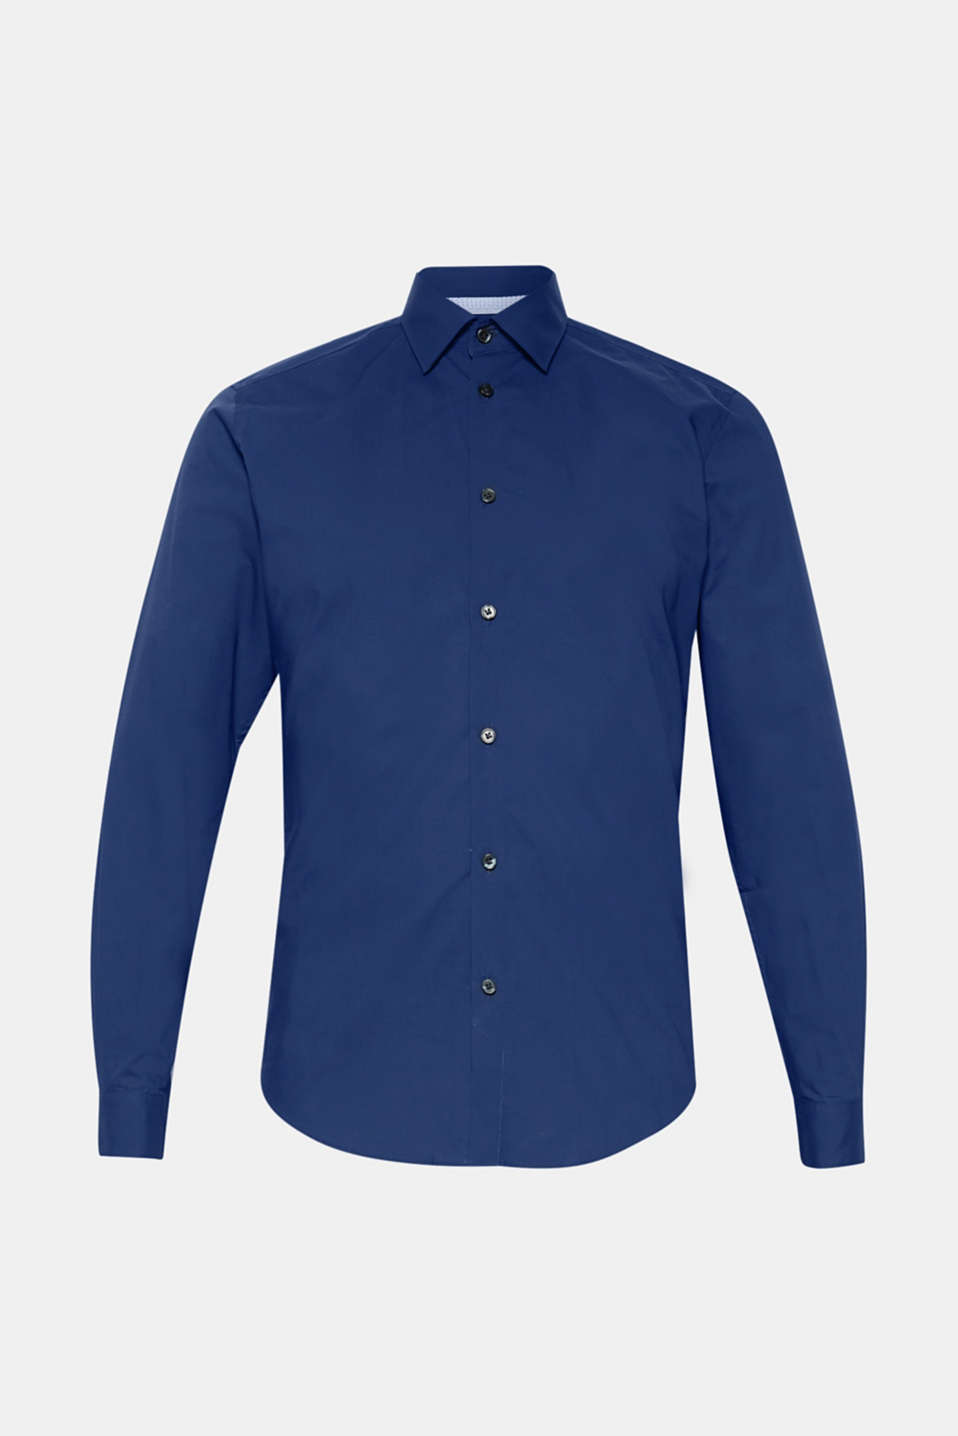 Poplin shirt in 100% cotton, NAVY, detail image number 6